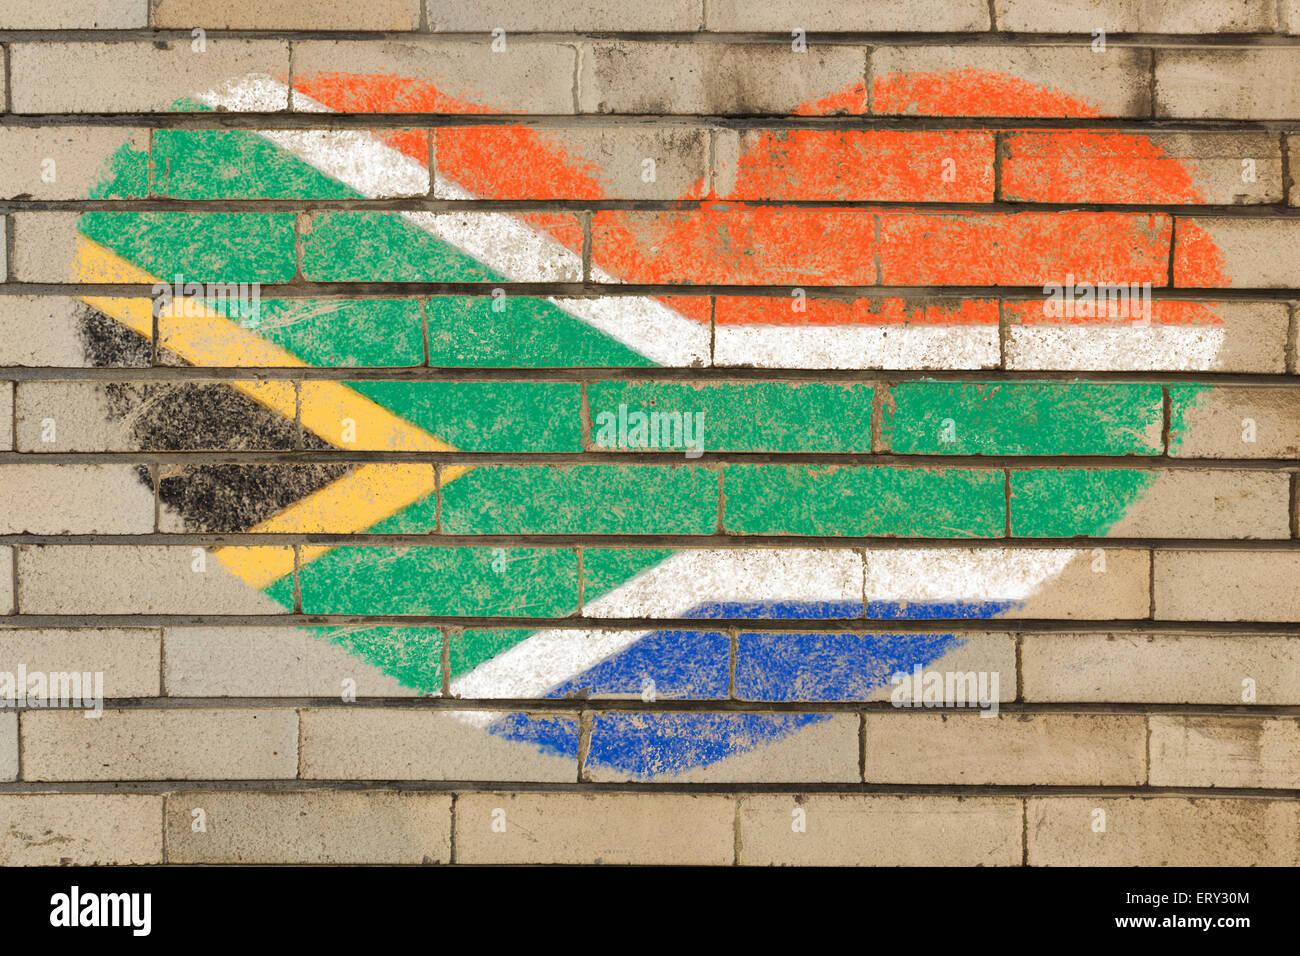 Old South African Flag Stockfotos & Old South African Flag Bilder ...